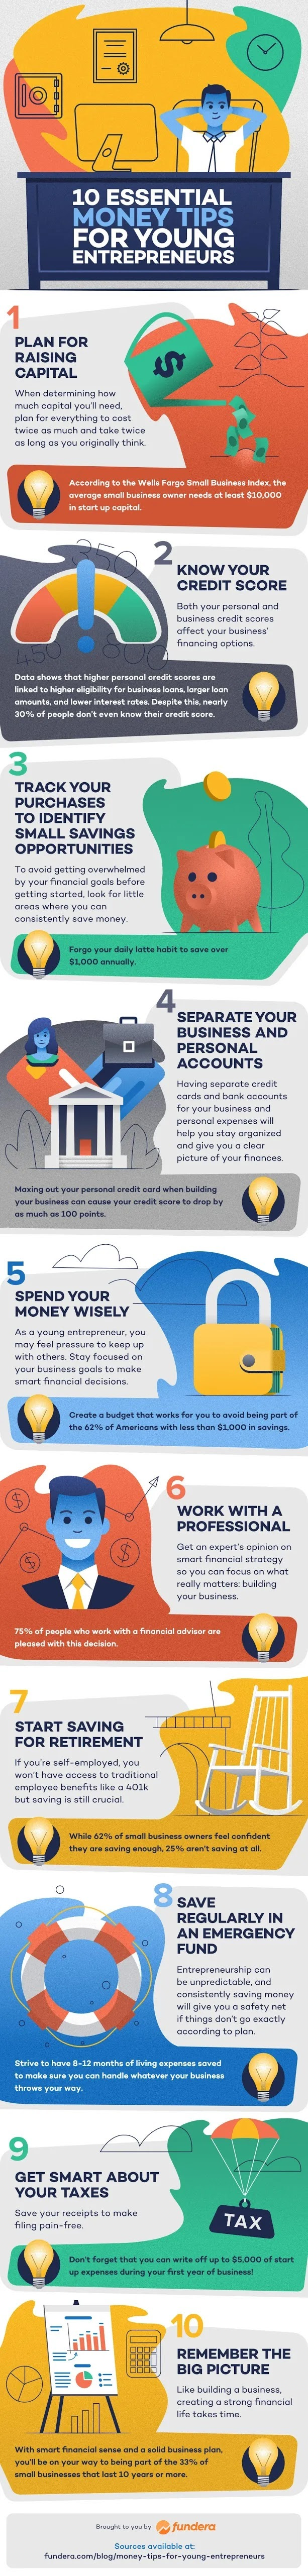 10 Essential Money Tips for young Entrepreneurs #Infographic